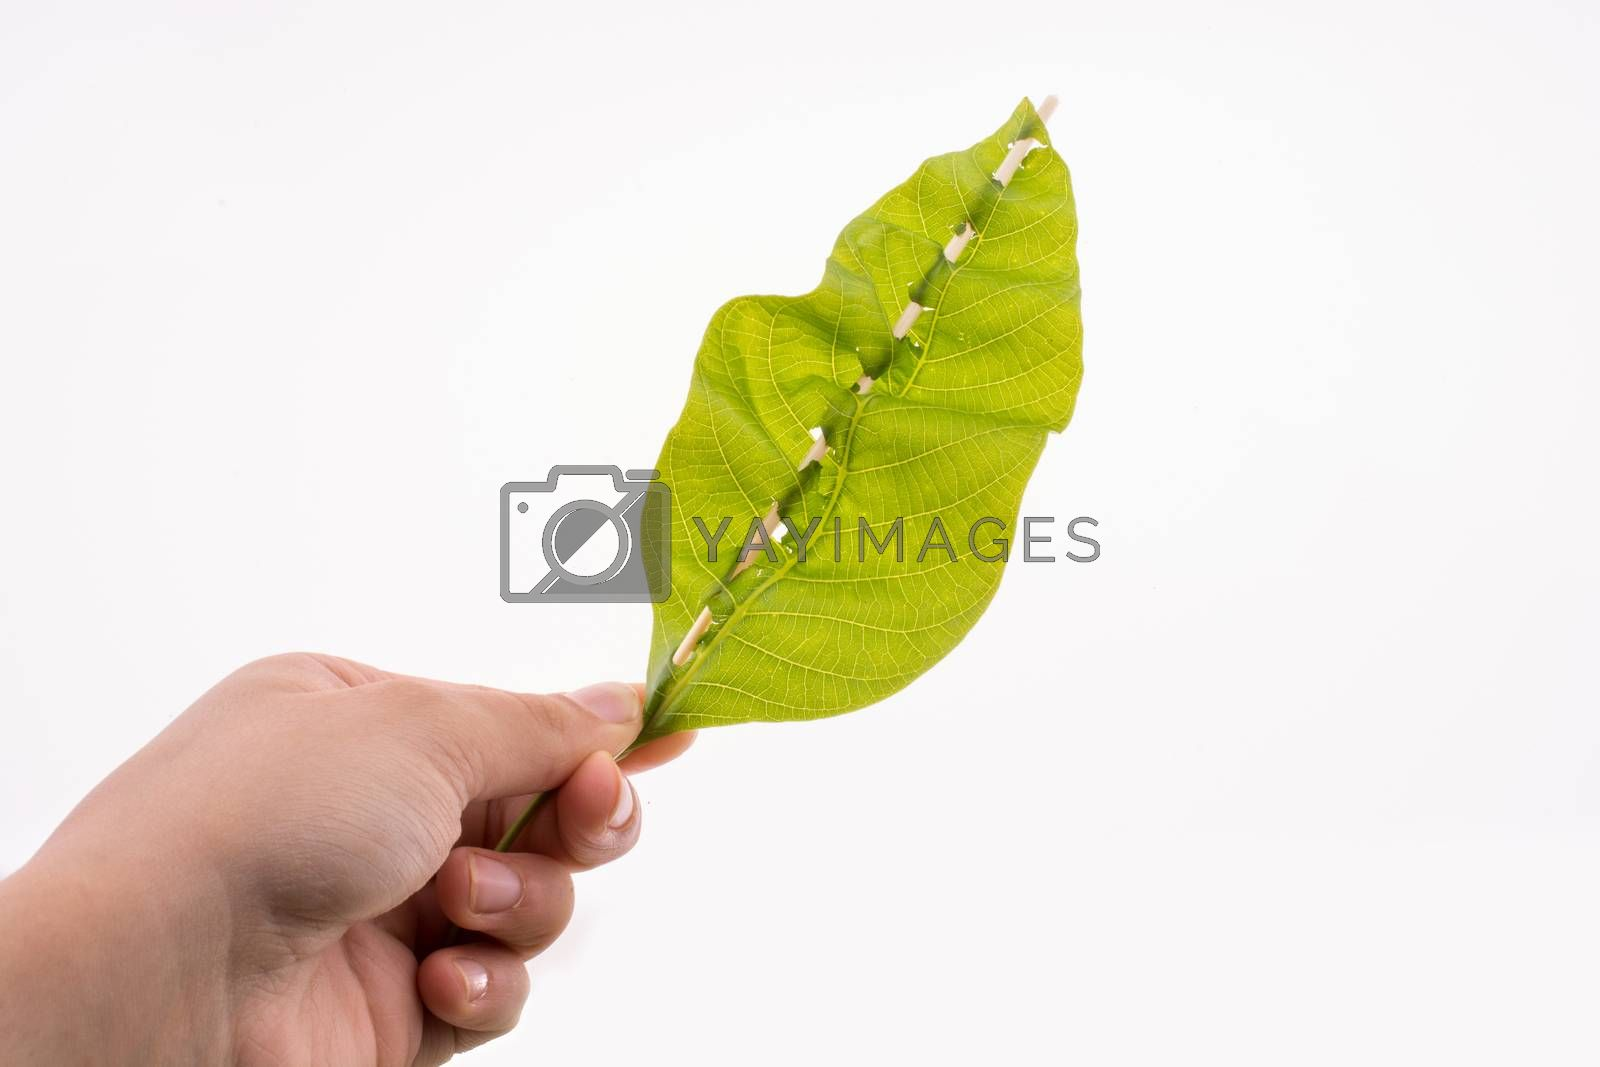 Hand holding a green leaf on a white background